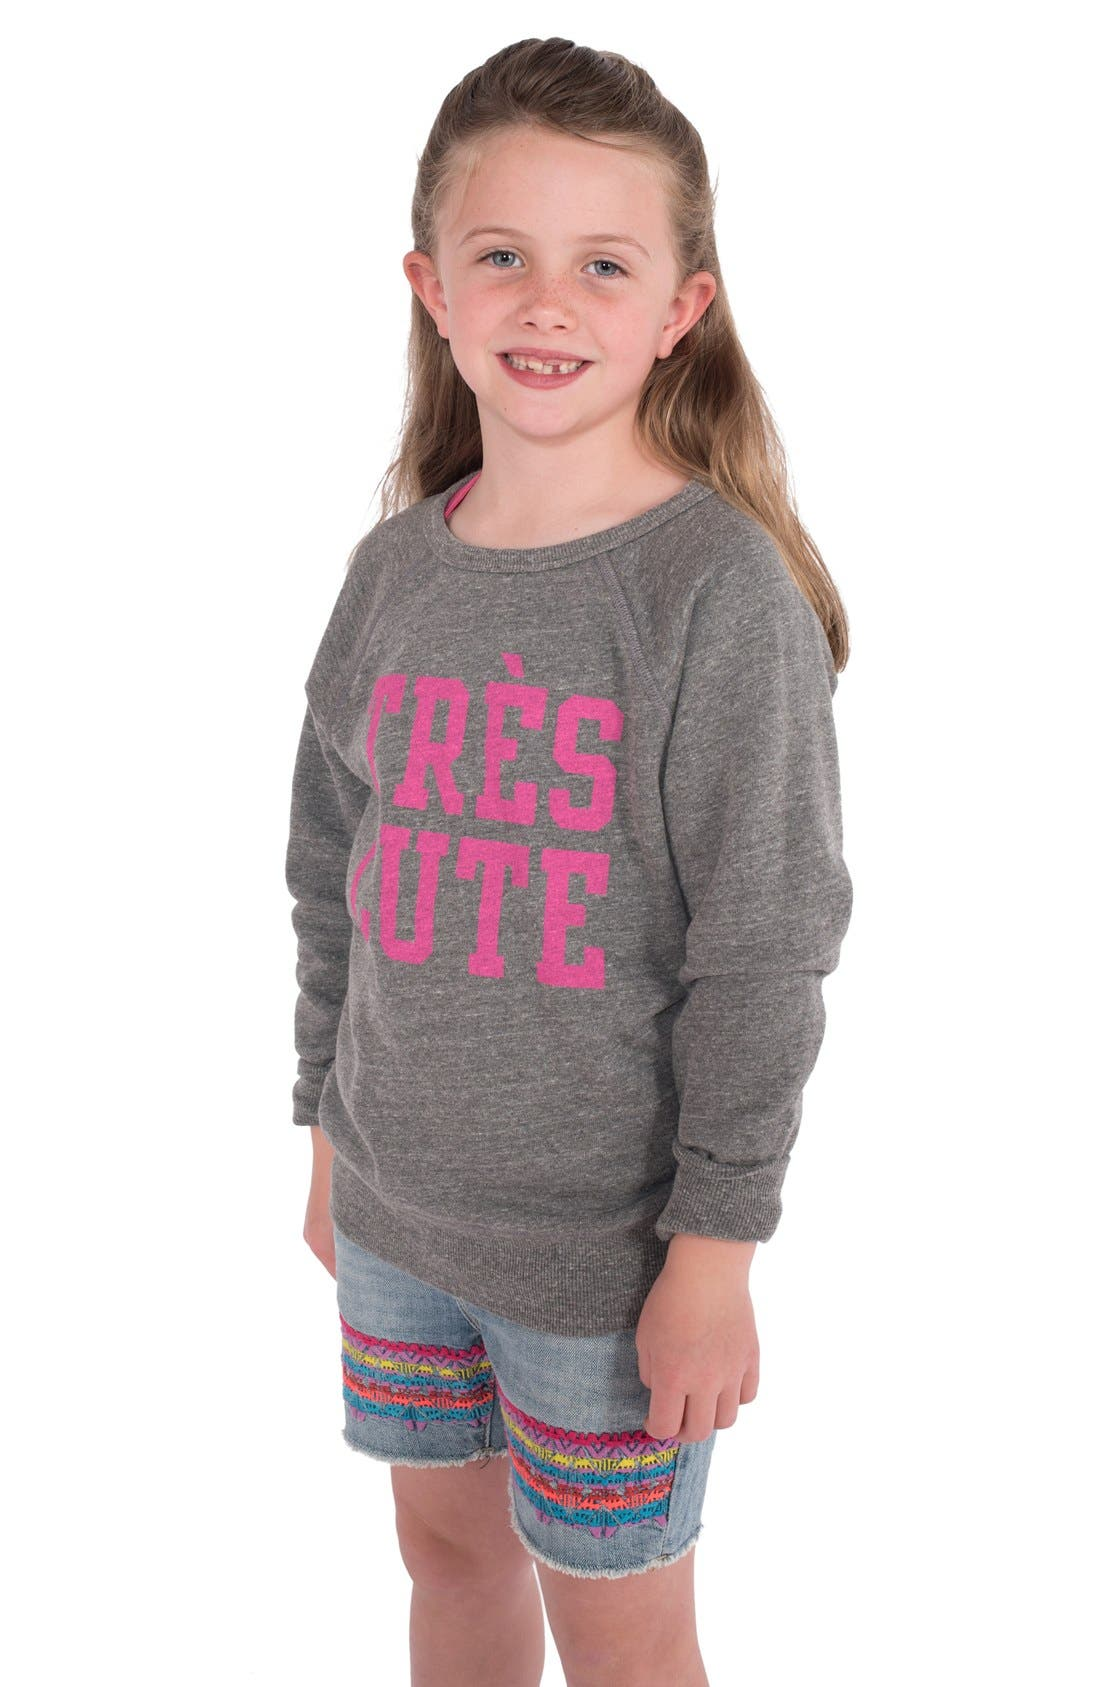 Main Image - Peek 'Très Cute' Graphic Sweatshirt (Toddler Girls, Little Girls & Big Girls)